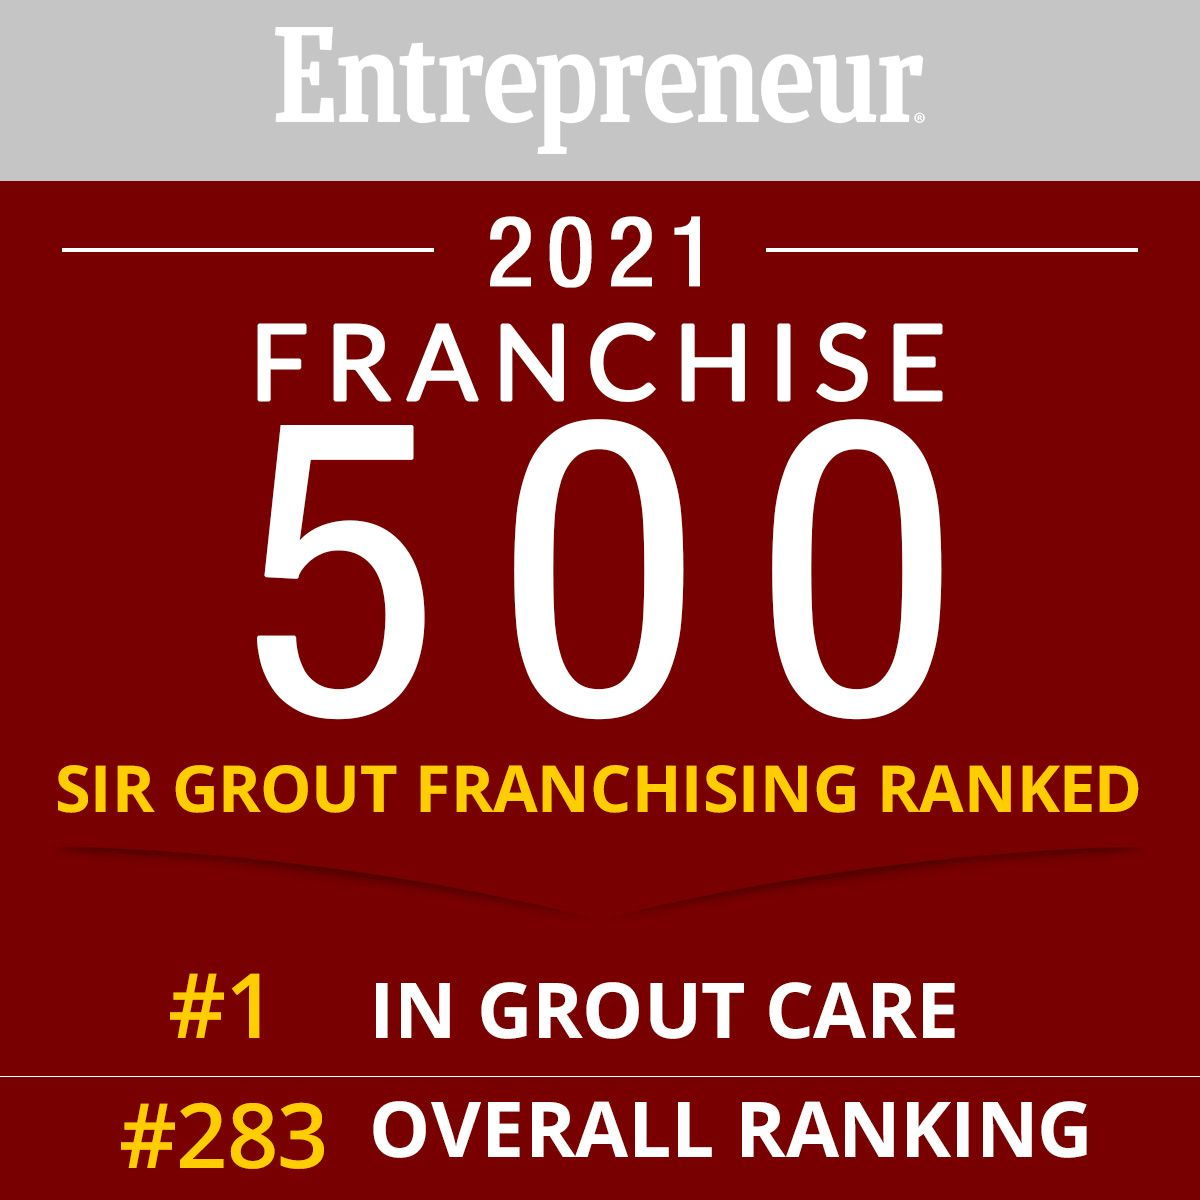 Sir Grout Franchising Ranked